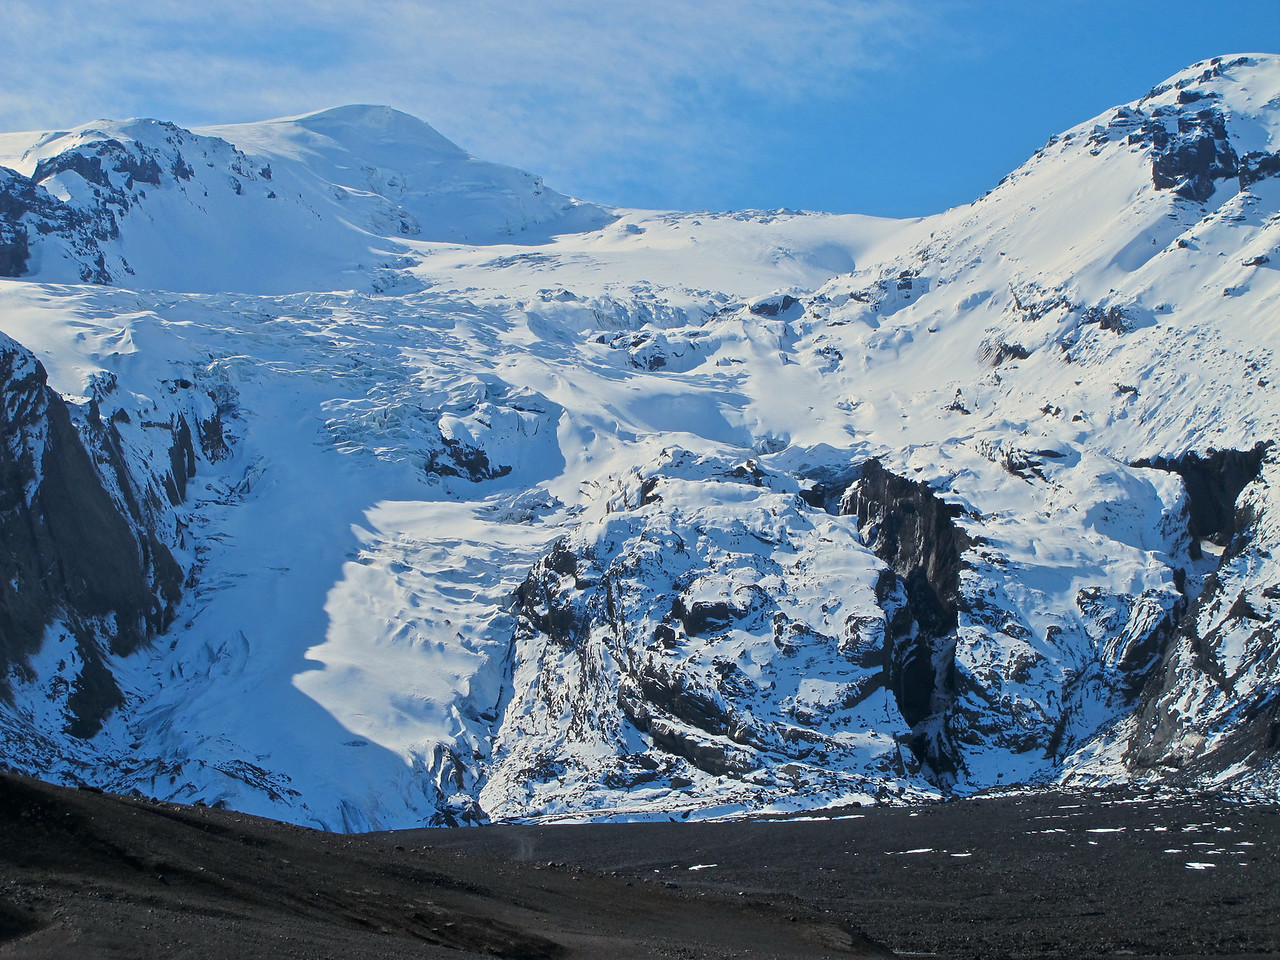 Mýrdalsjökull is an exceedingly wet location, receiving more than 10 metres of precipitation annually.[